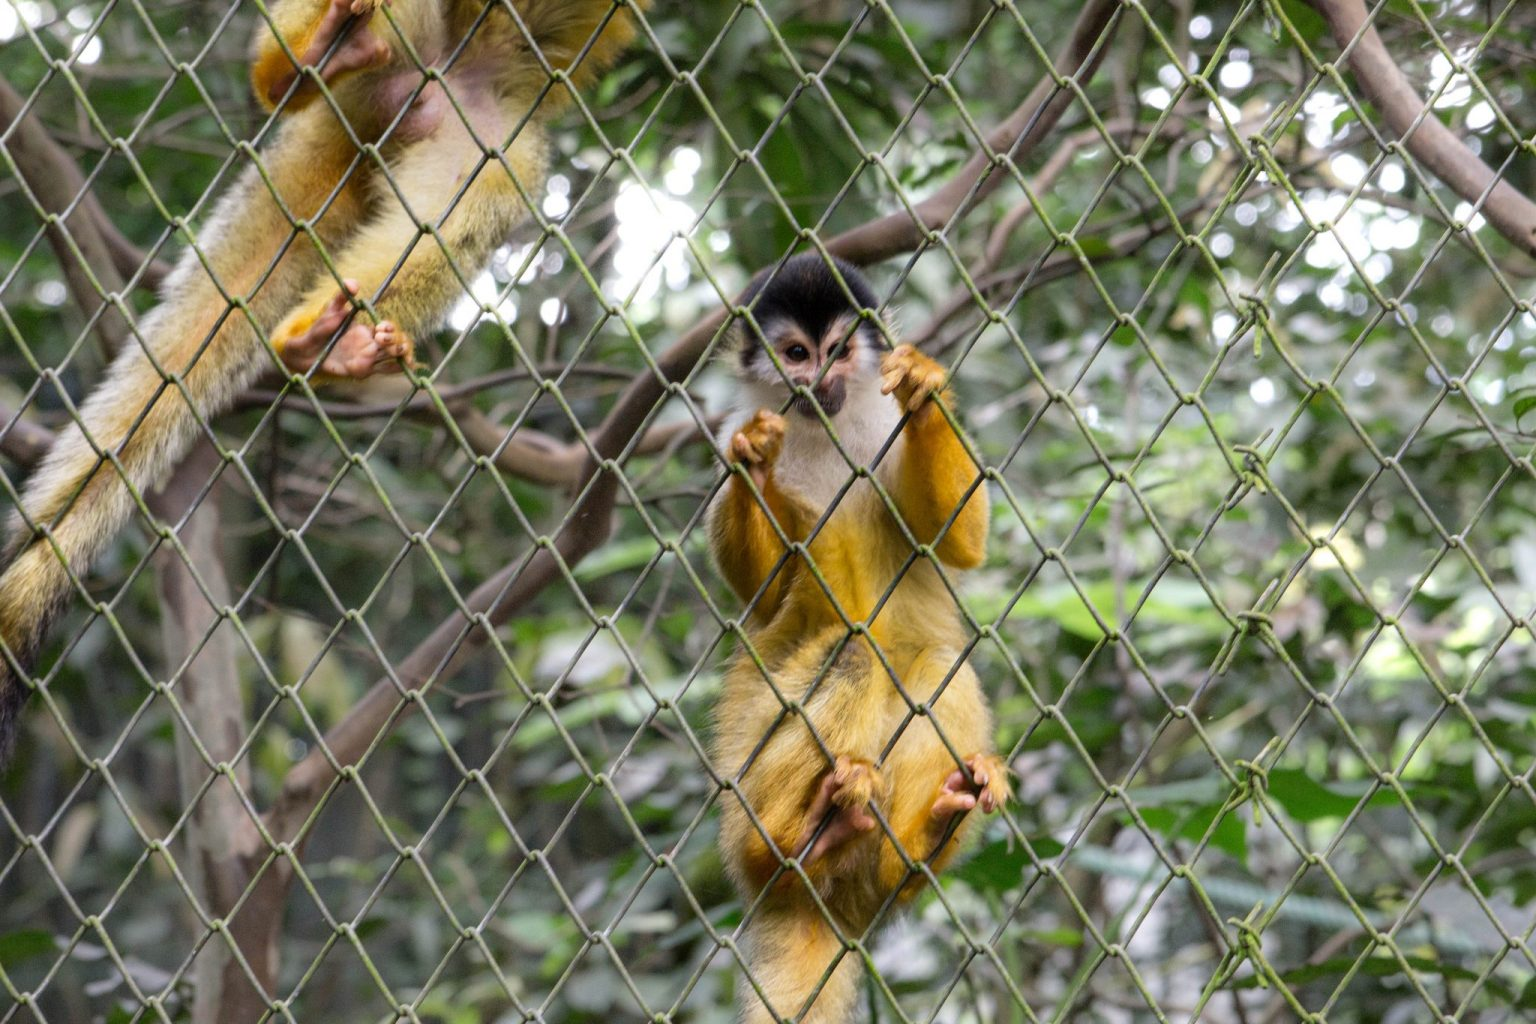 One of the things to do in Costa Rica with kids is to watch the monkeys play.